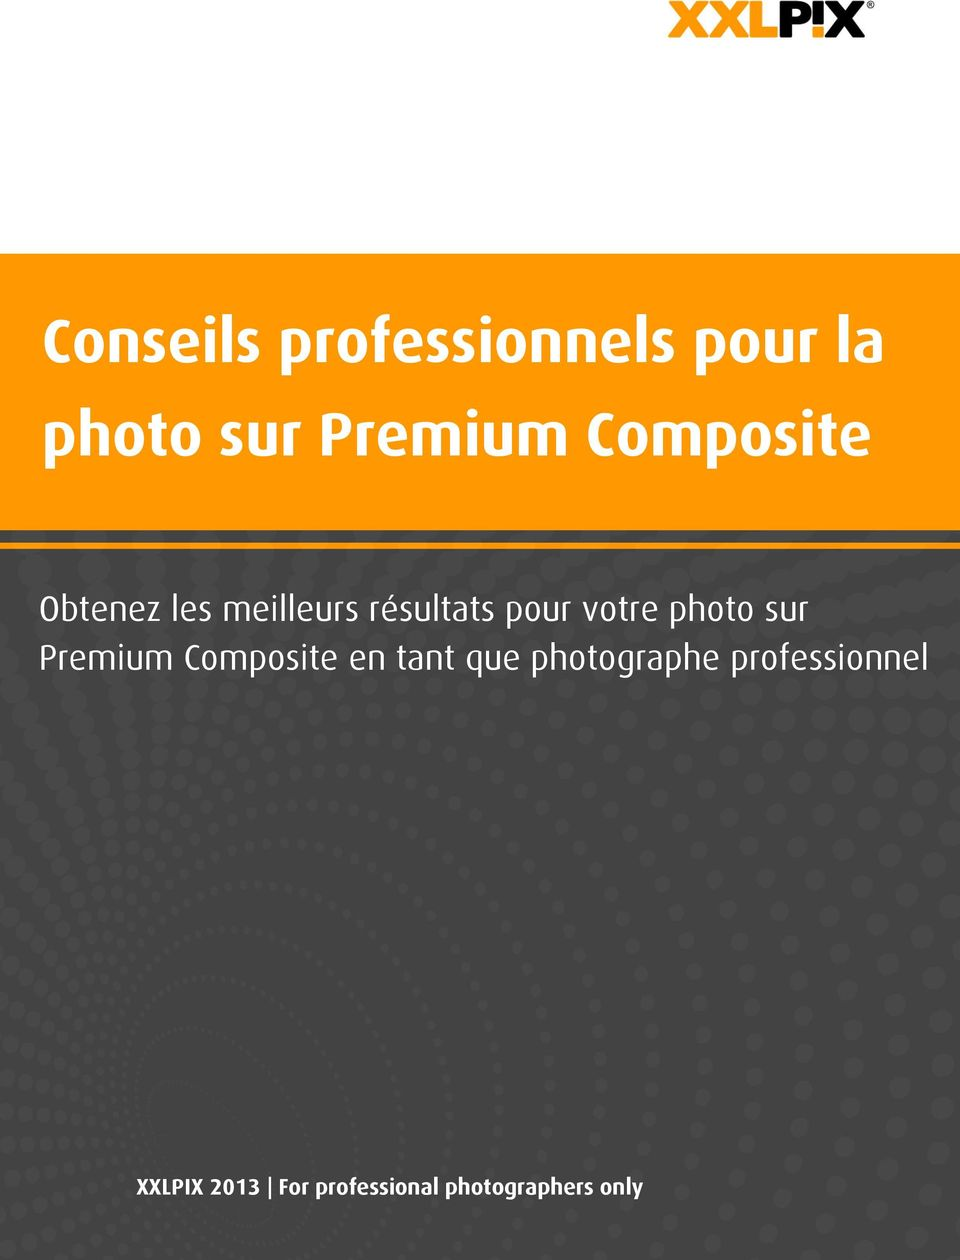 photo sur Premium Composite en tant que photographe